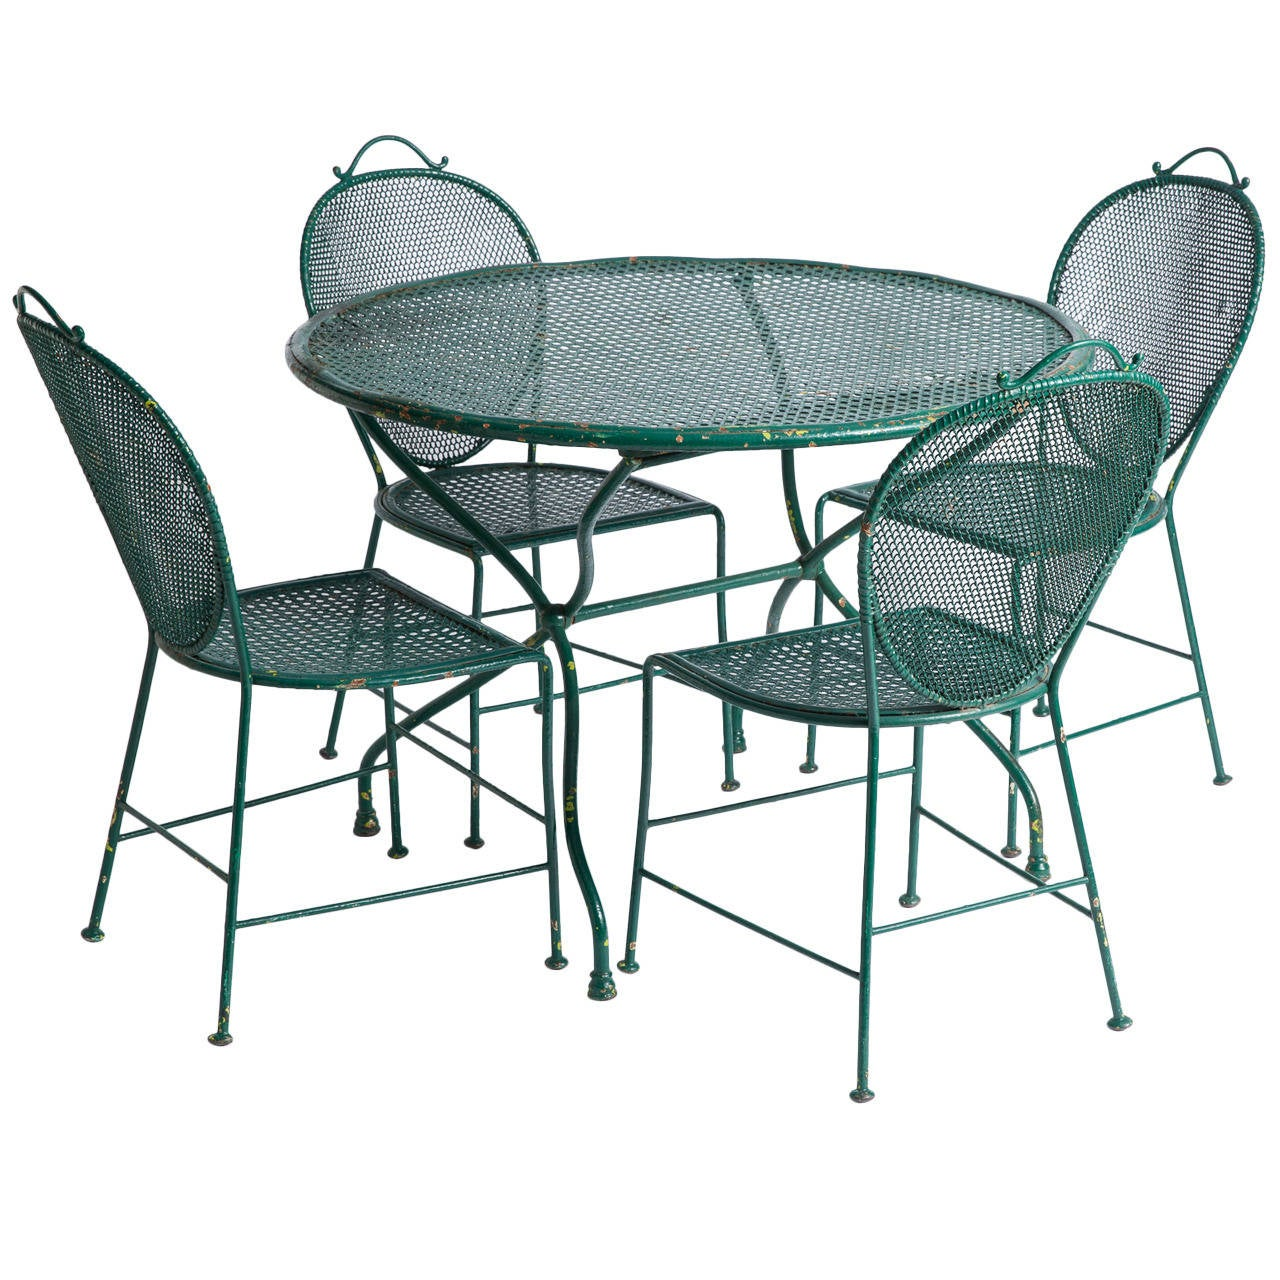 French Wrought Iron Garden Table And Chairs Circa 1900 At 1stdibs: french metal garden furniture